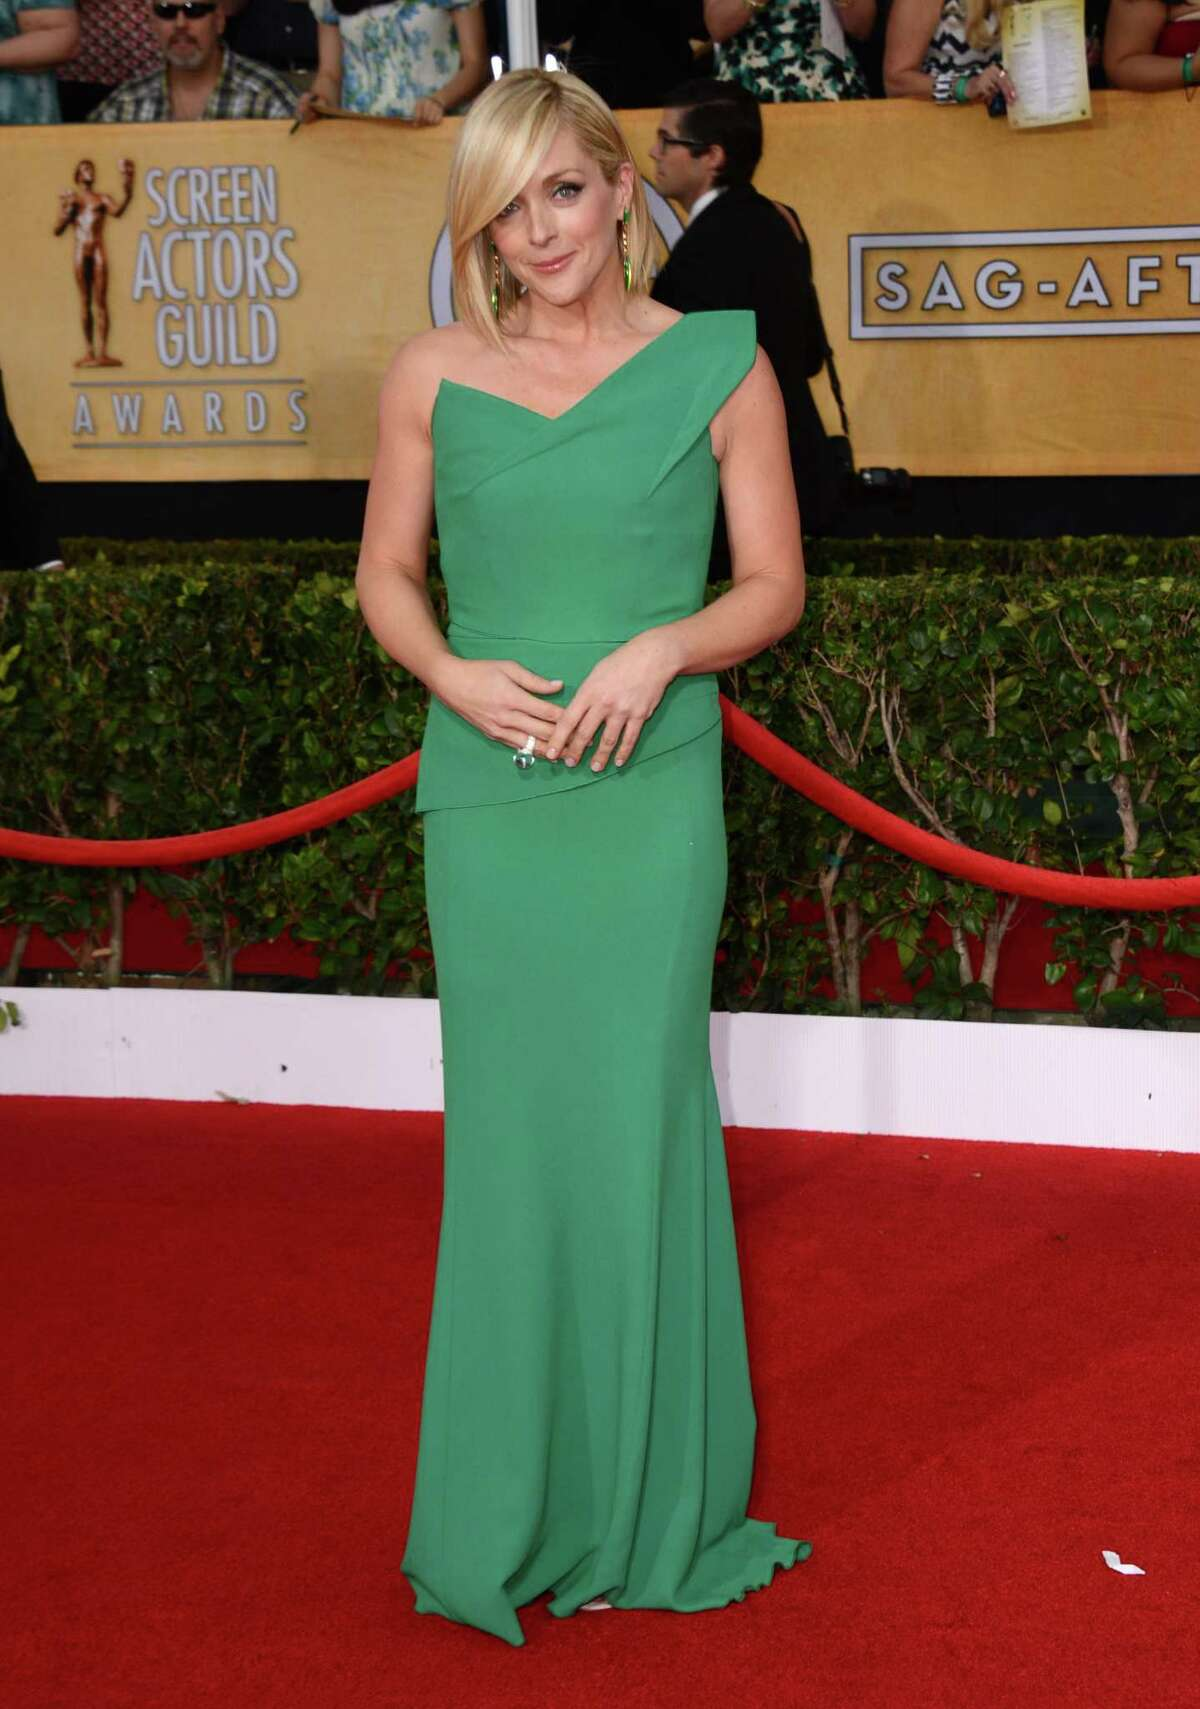 Jane Krakowski arrives at the 20th annual Screen Actors Guild Awards at the Shrine Auditorium in Los Angeles on Saturday, Jan. 18, 2014. In the first part of this gallery, we'll look at the red carpet fashions. First: Bright colors.